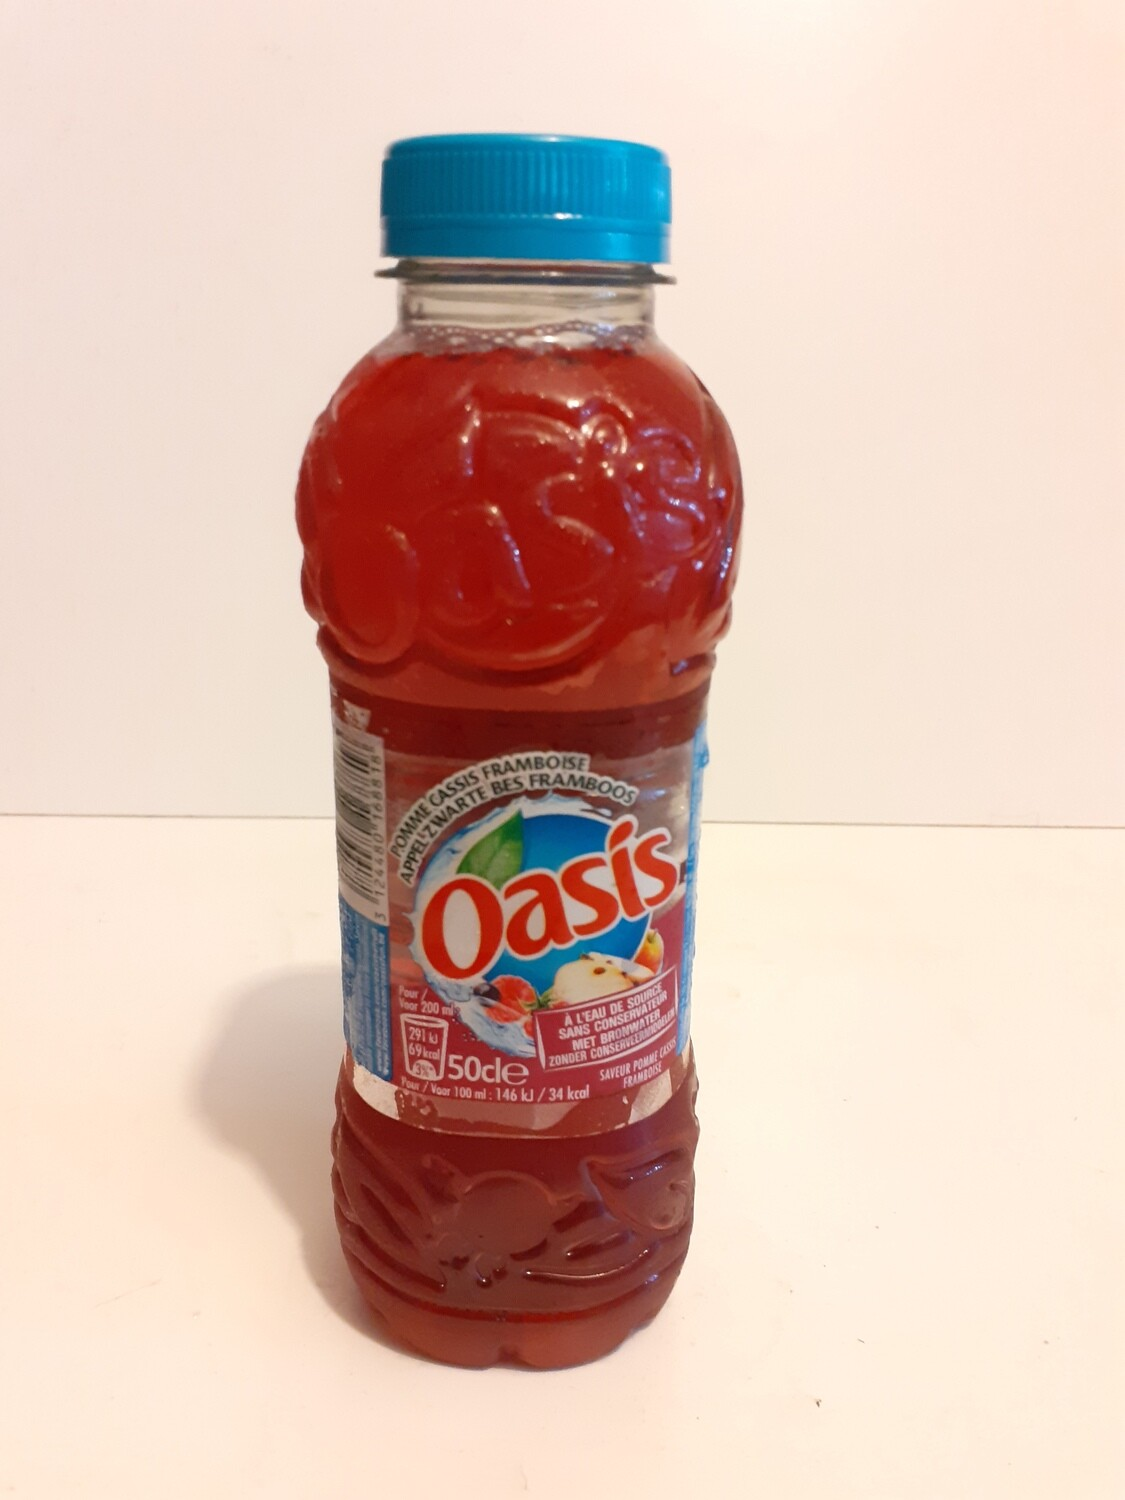 Pomme Cassis Framboise OASIS 50 cl